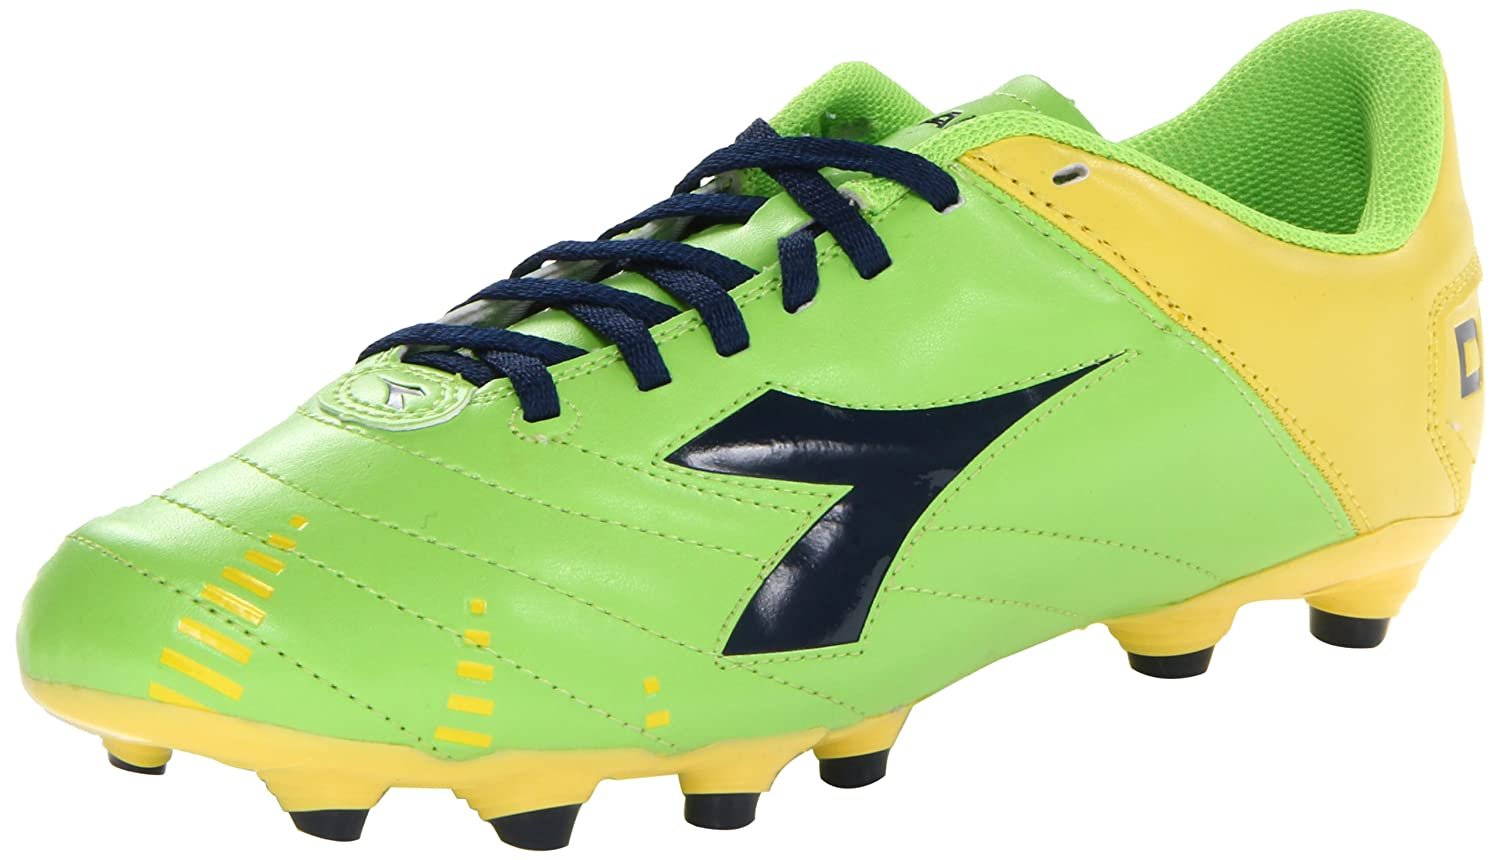 Diadora メンズ B009SBUYHG 9 mens_us|Lime/Yellow/Navy Lime/Yellow/Navy 9 mens_us